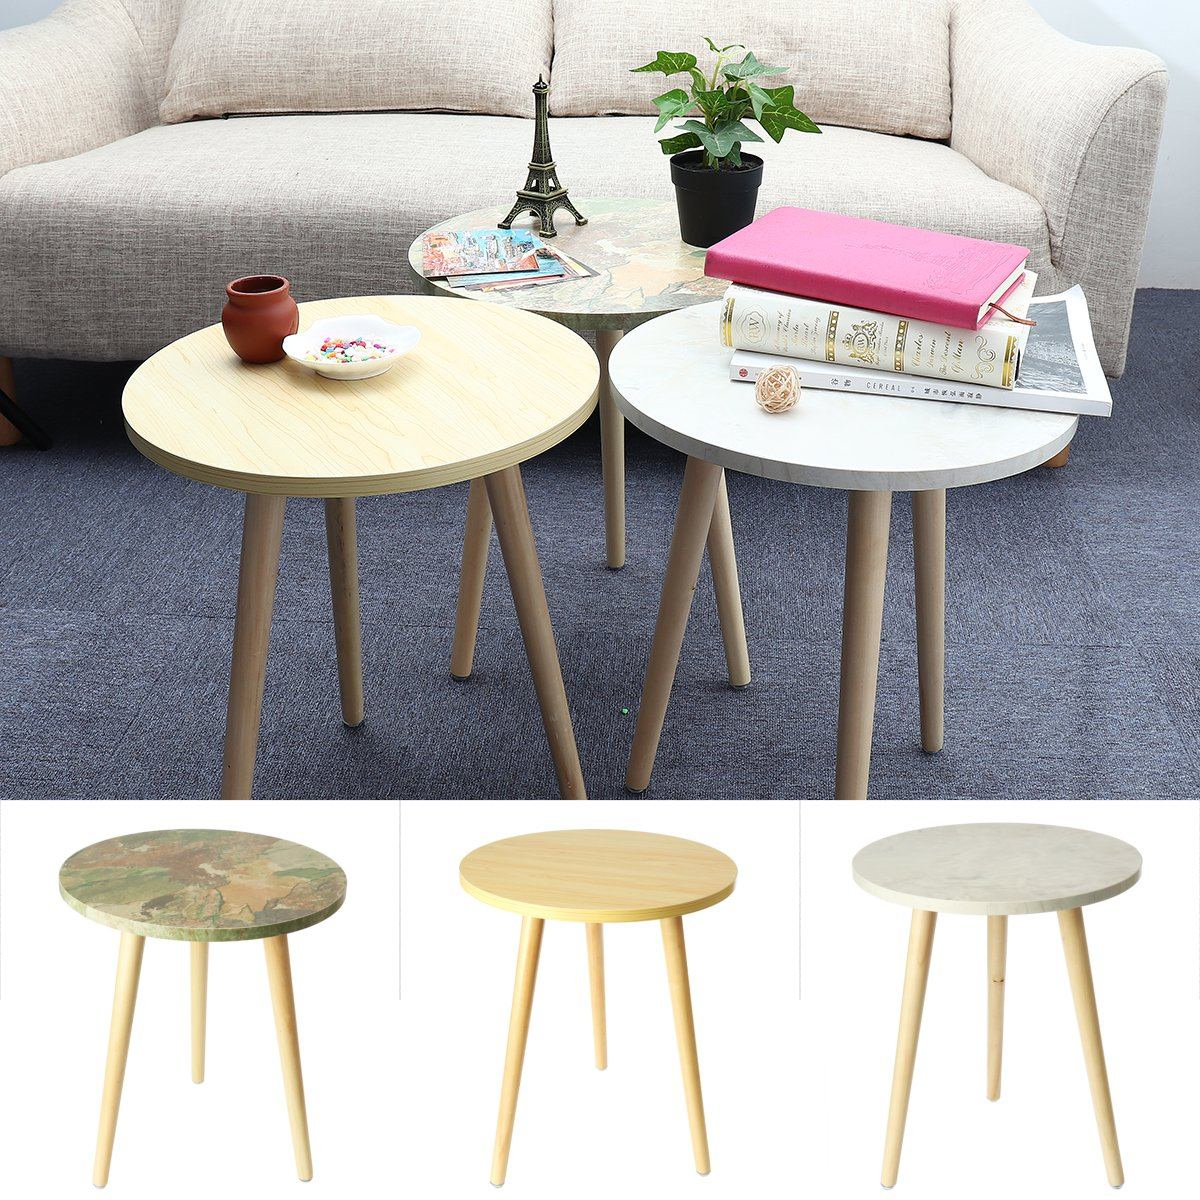 Fashion Coffee Tables Simple Mini Nordic Convenient Sofa Circular Practical Natural Tea Tables Living Room Decoration 3 Colors